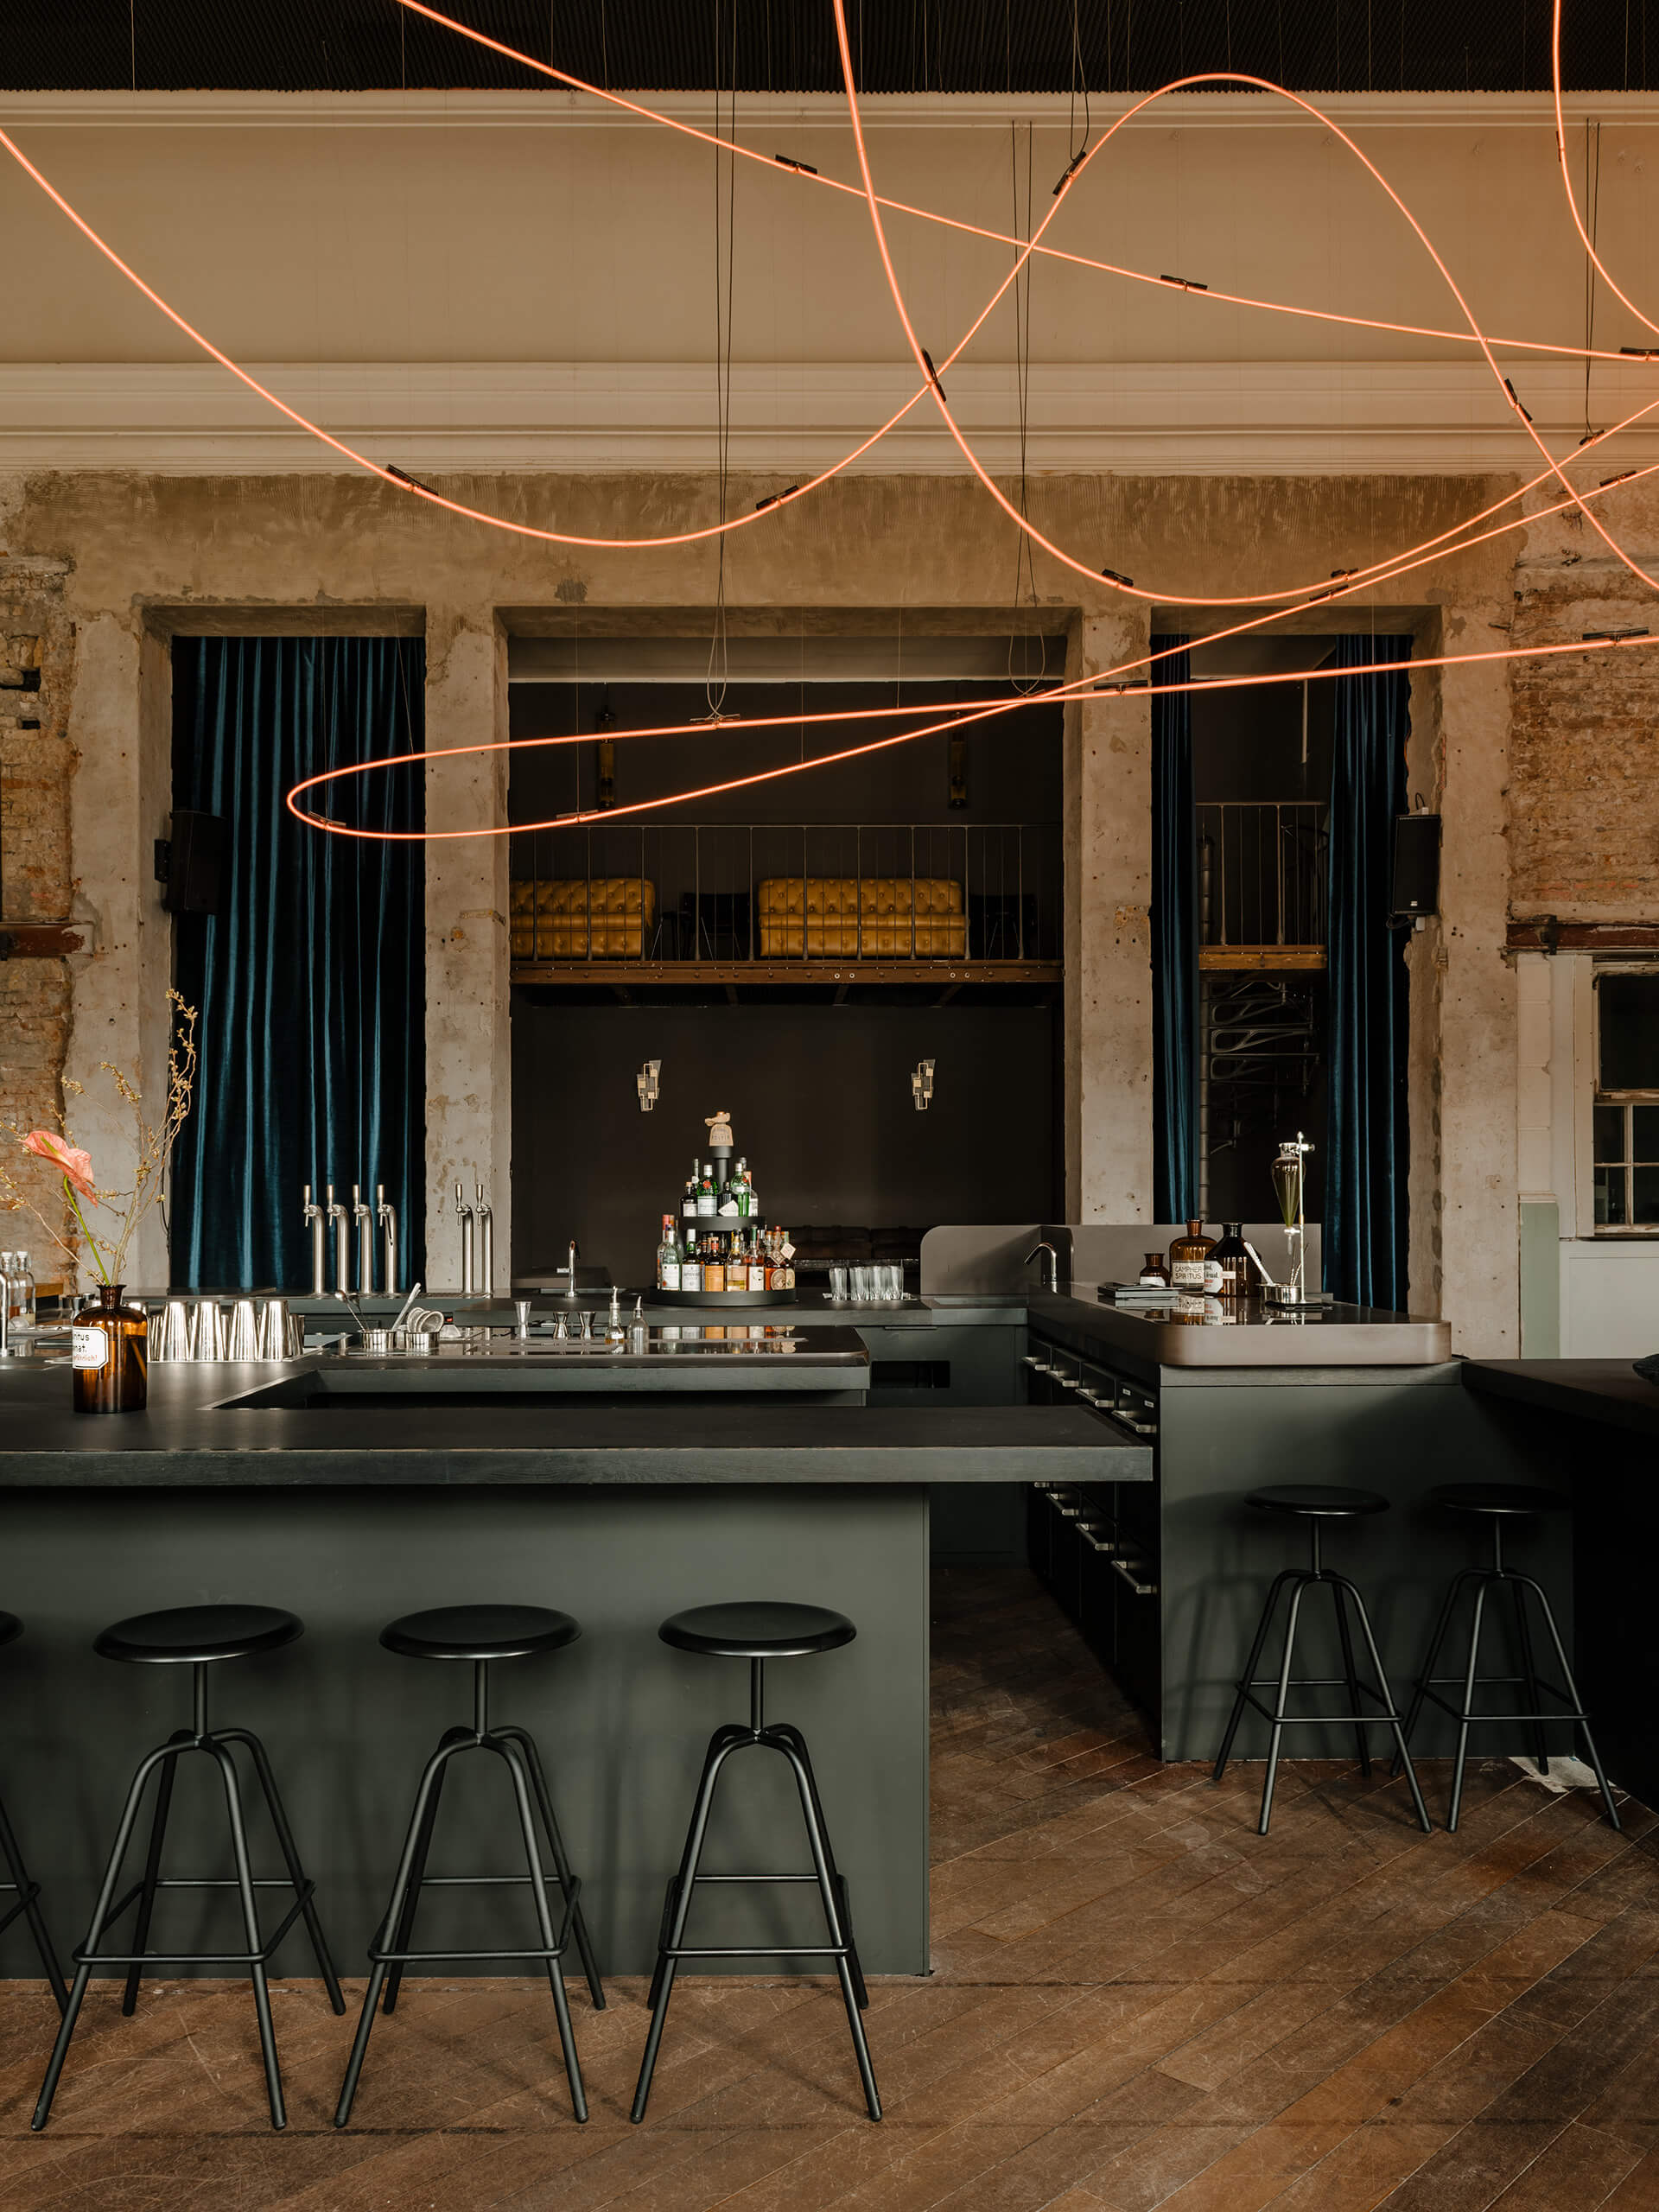 KINK Bar was designed in collaboration with Hidden Fortress | KINK Bar and Restaurant by Oliver Mansaray and Daniel Scheppan | STIRworld